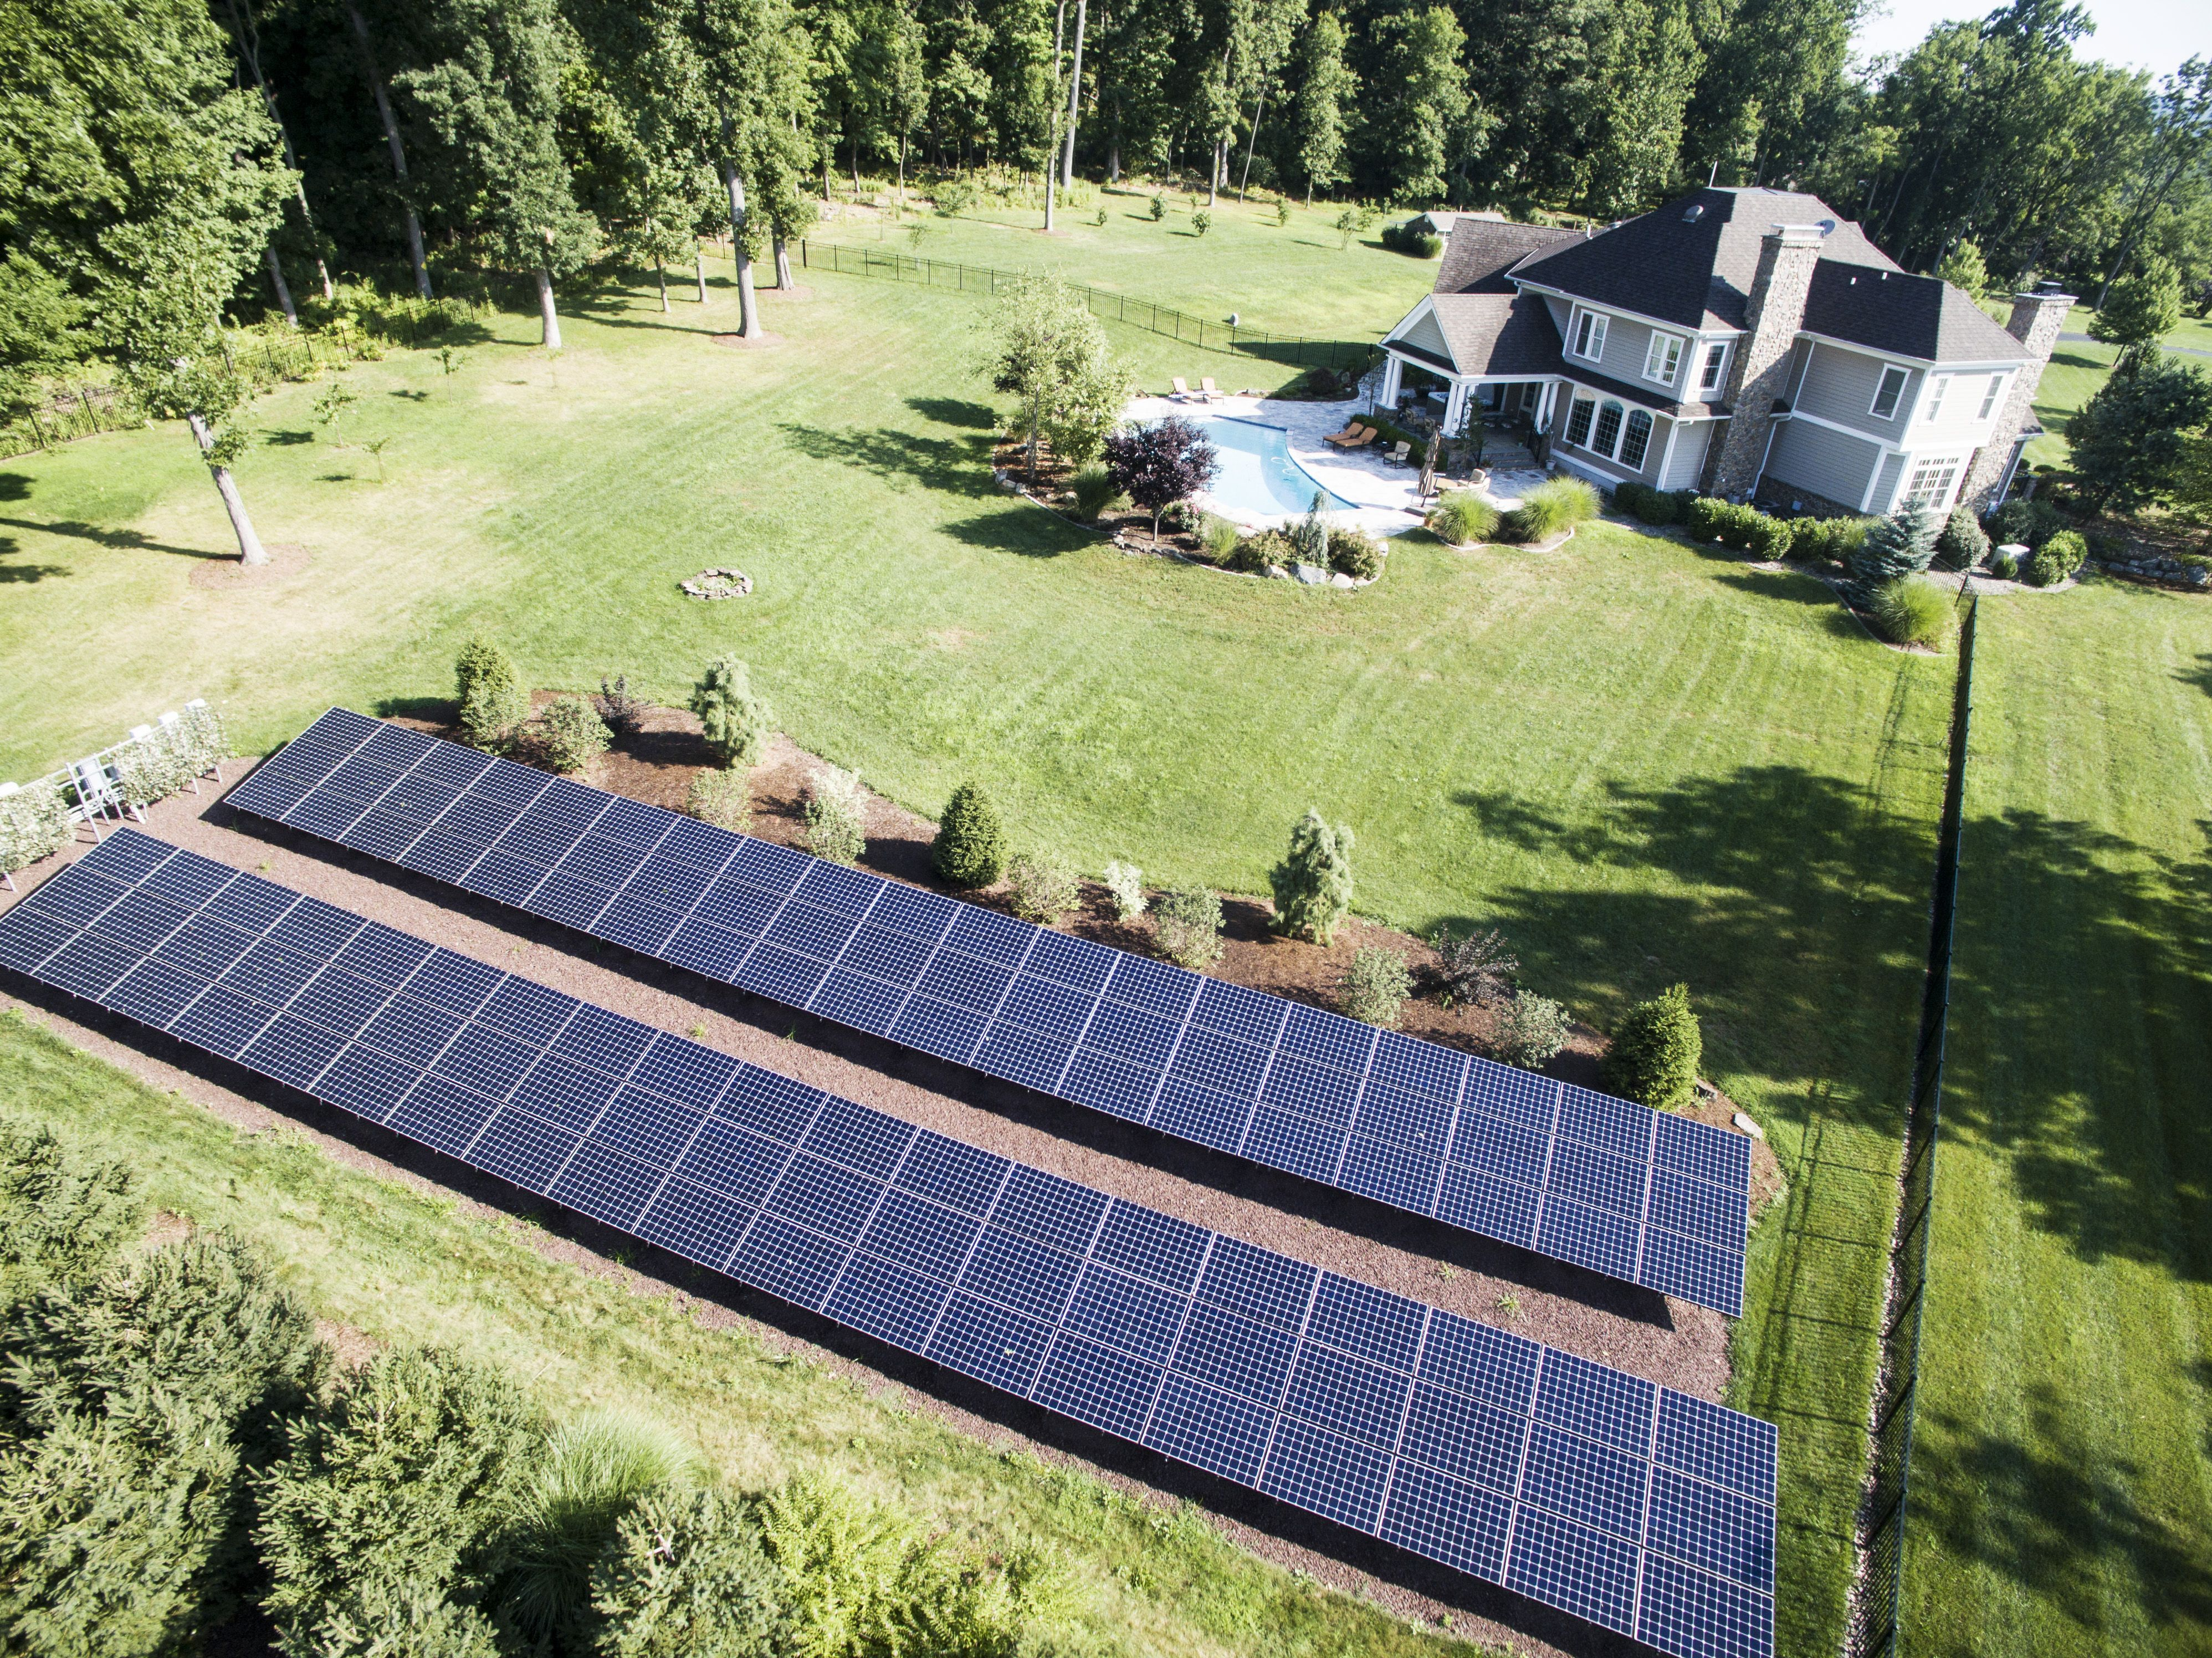 This rather large home in New Jersey is utility free